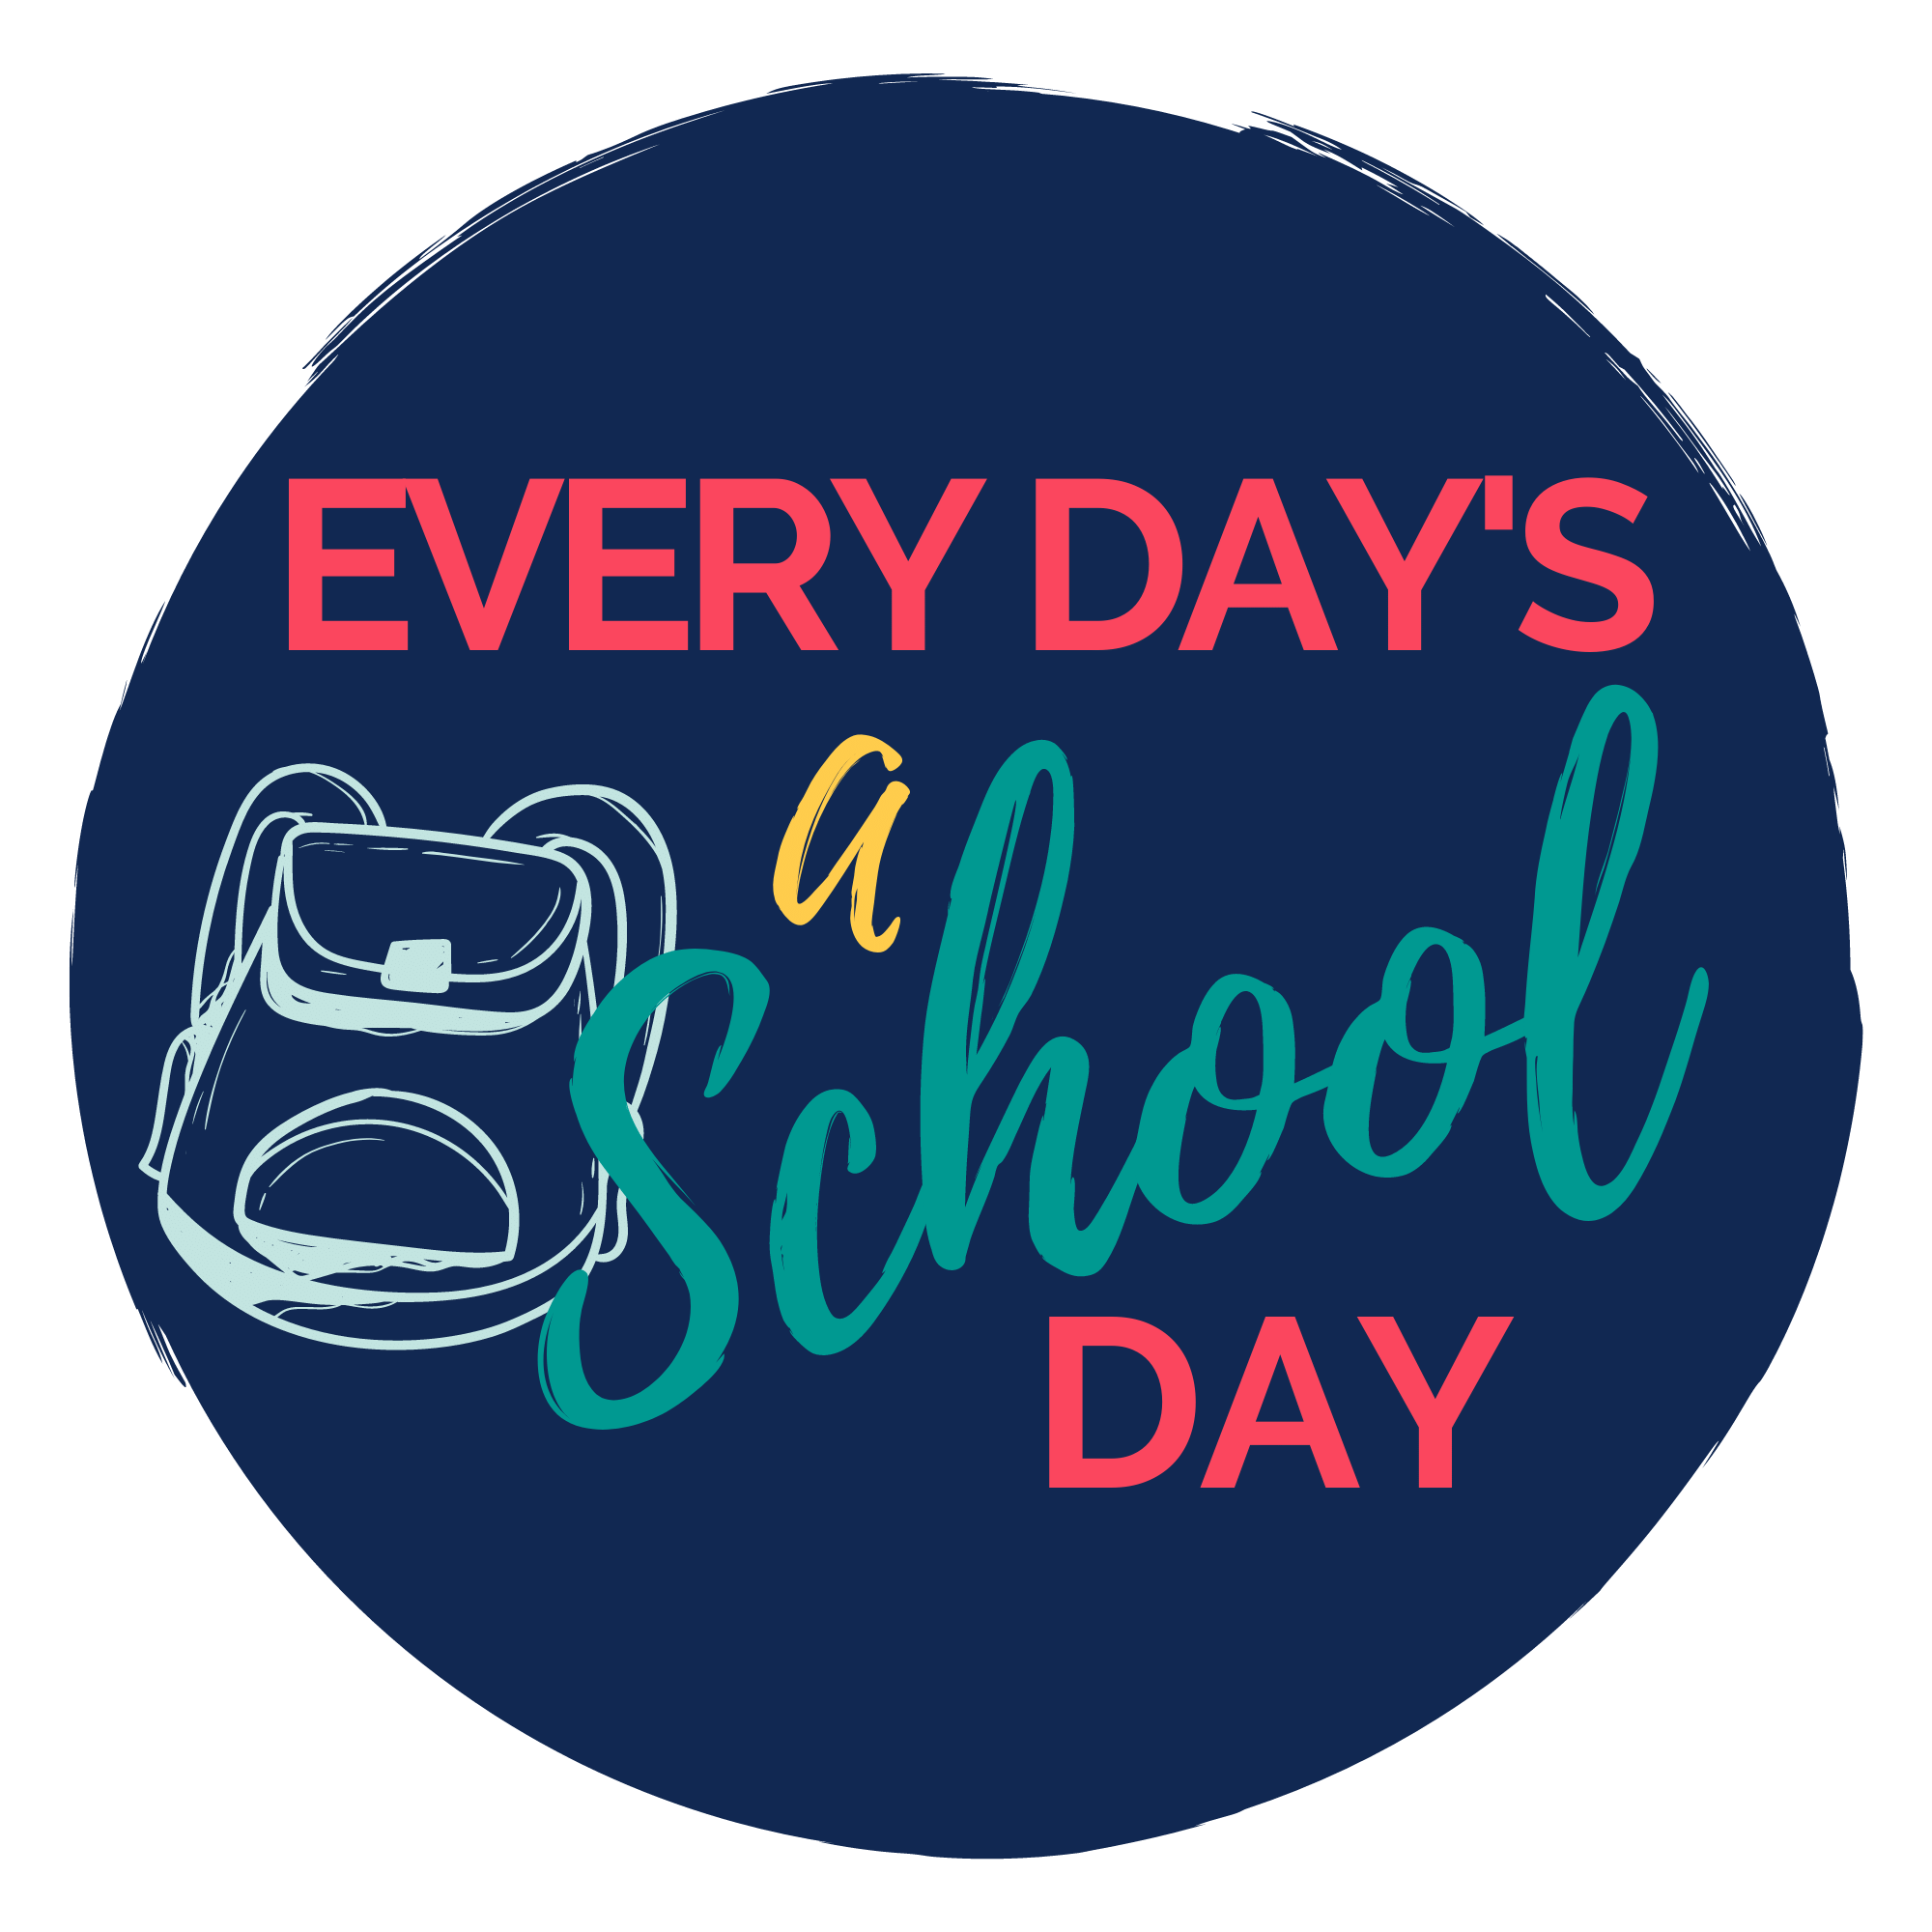 Every Day's A School Day